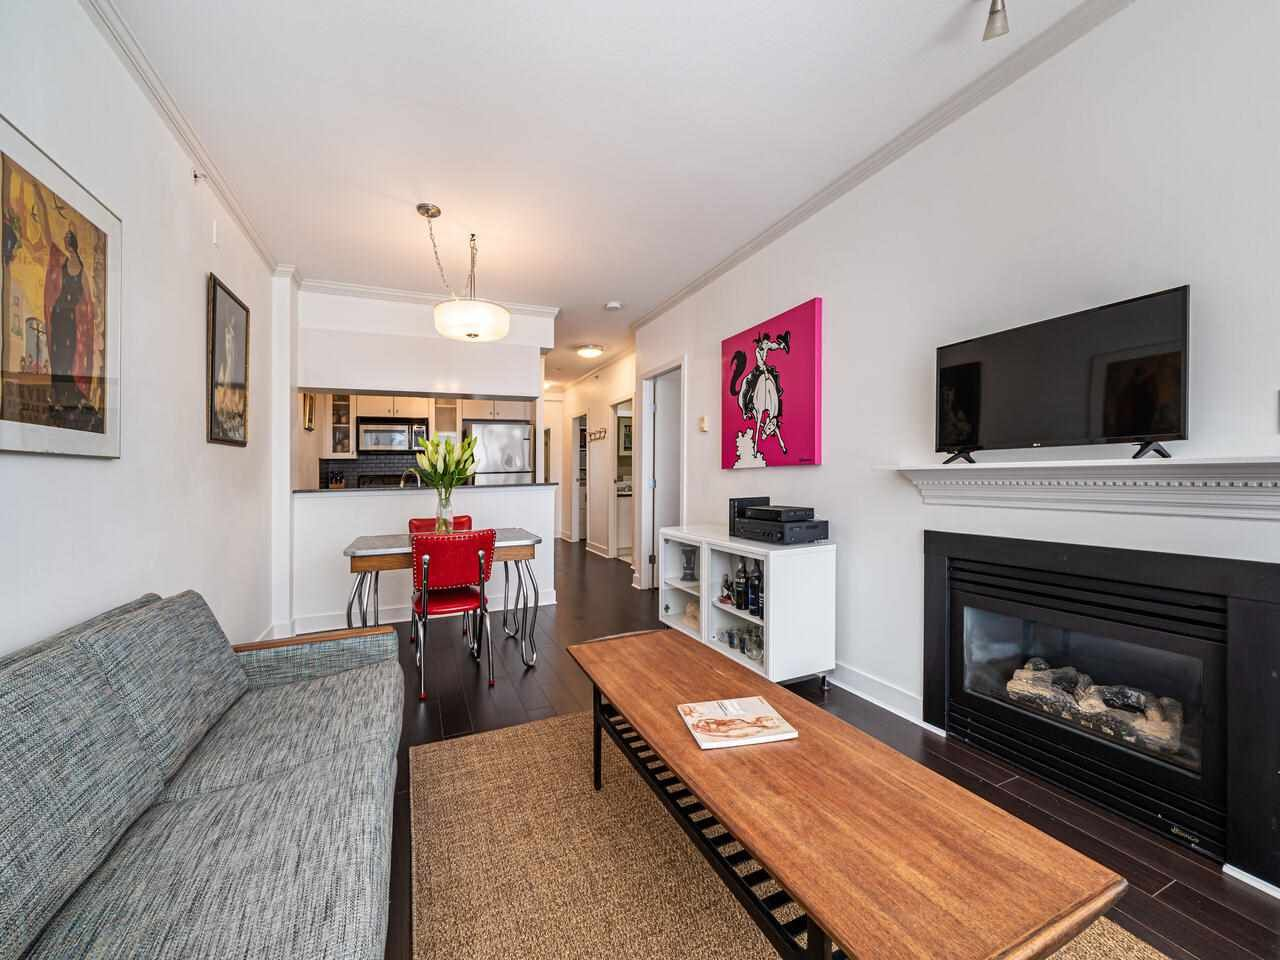 Main Photo: 501 1238 BURRARD STREET in Vancouver: Downtown VW Condo for sale (Vancouver West)  : MLS®# R2568314